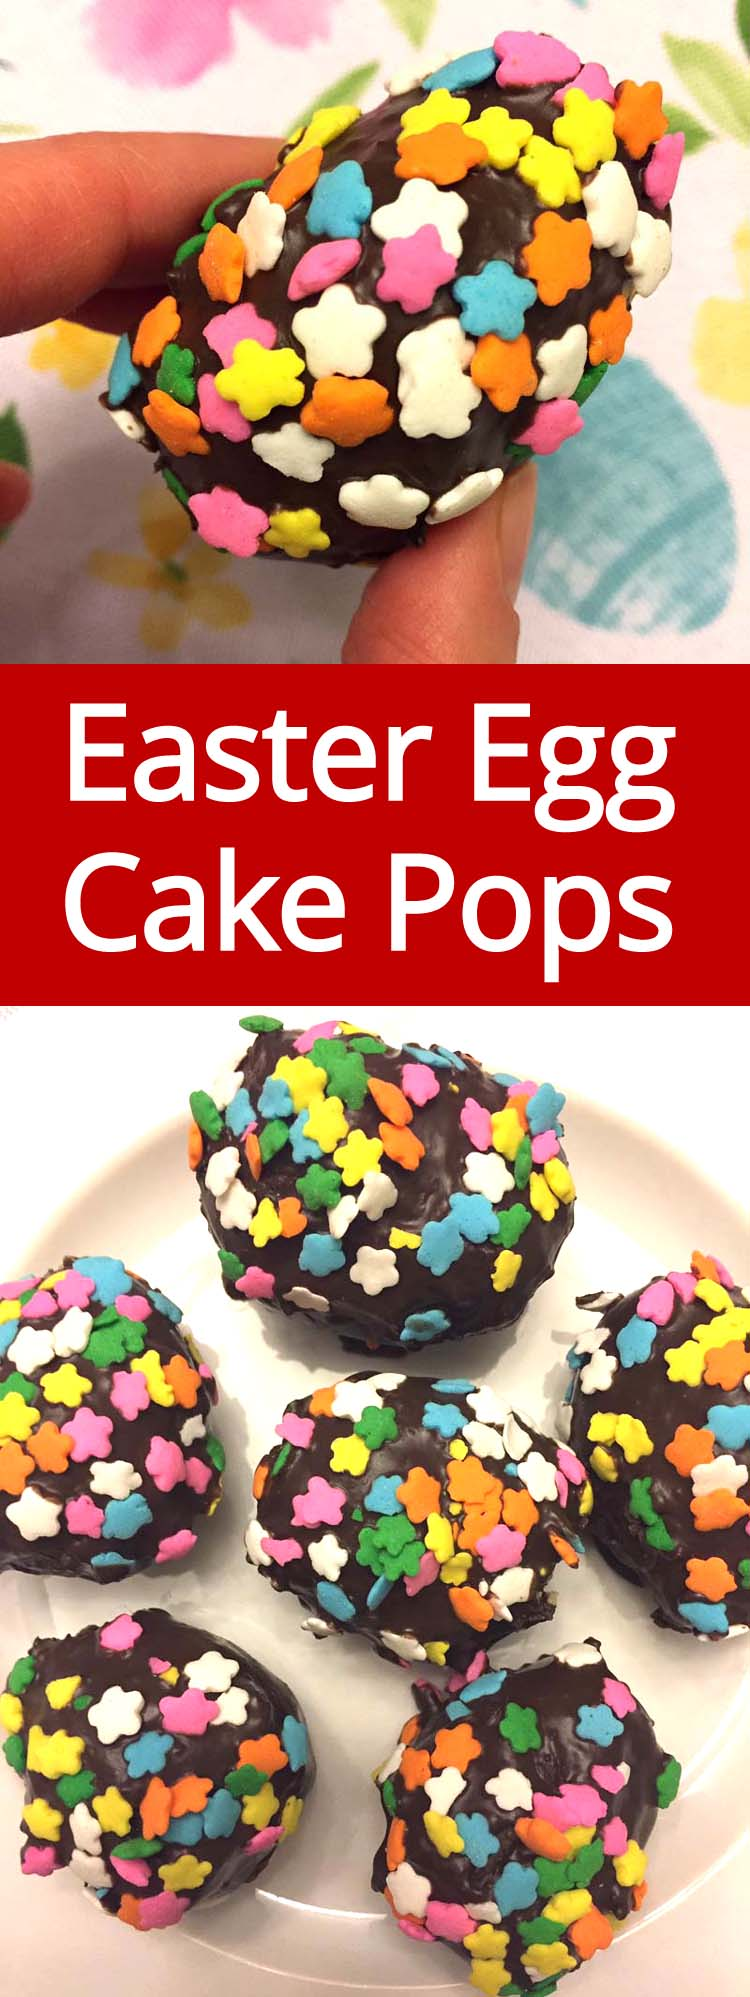 These Easter Eggs cake pops are amazing! Just crumble yellow cake mix, shaped into an egg, dip in chocolate and roll in Easter sprinkles! I love how simple and easy it is to make these eggs!